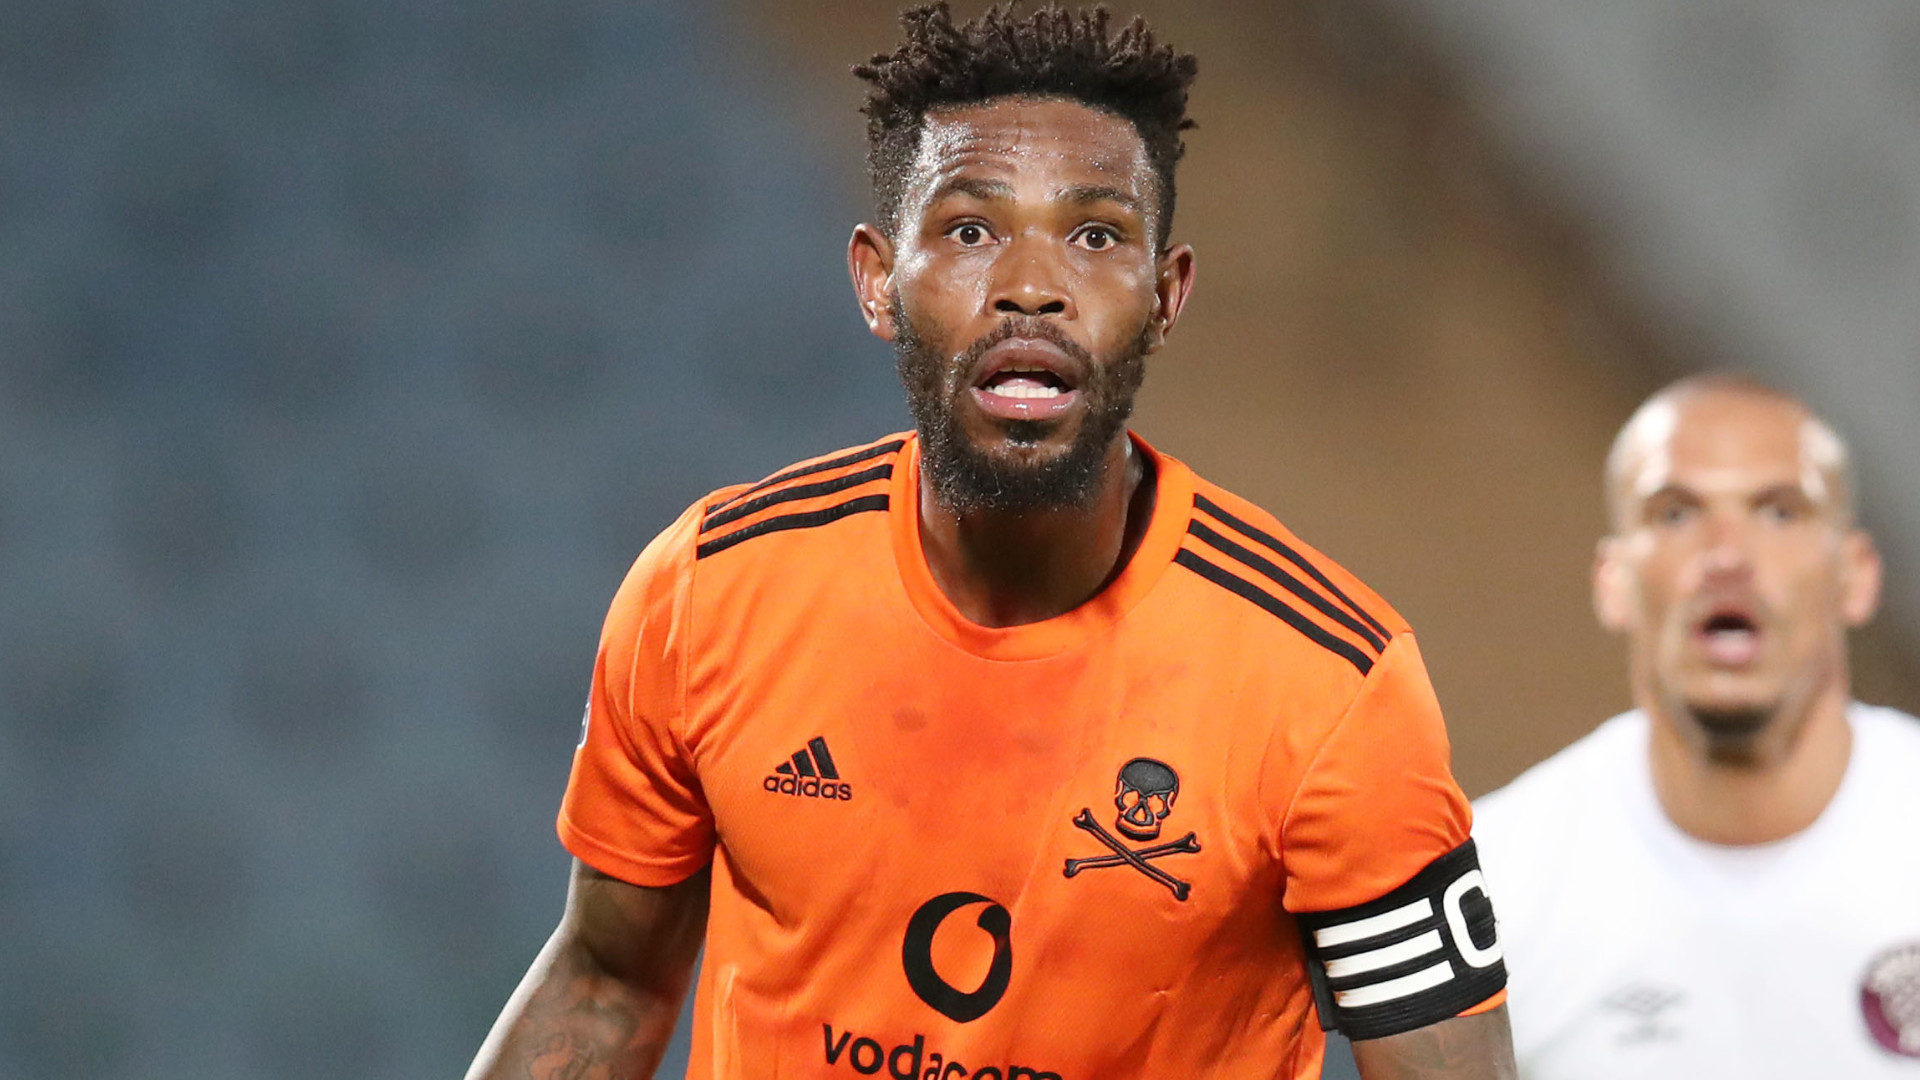 Kaizer Chiefs have Cardoso and they have Hlatshwayo – Twitter reacts to Orlando Pirates' humiliating loss | Goal.com